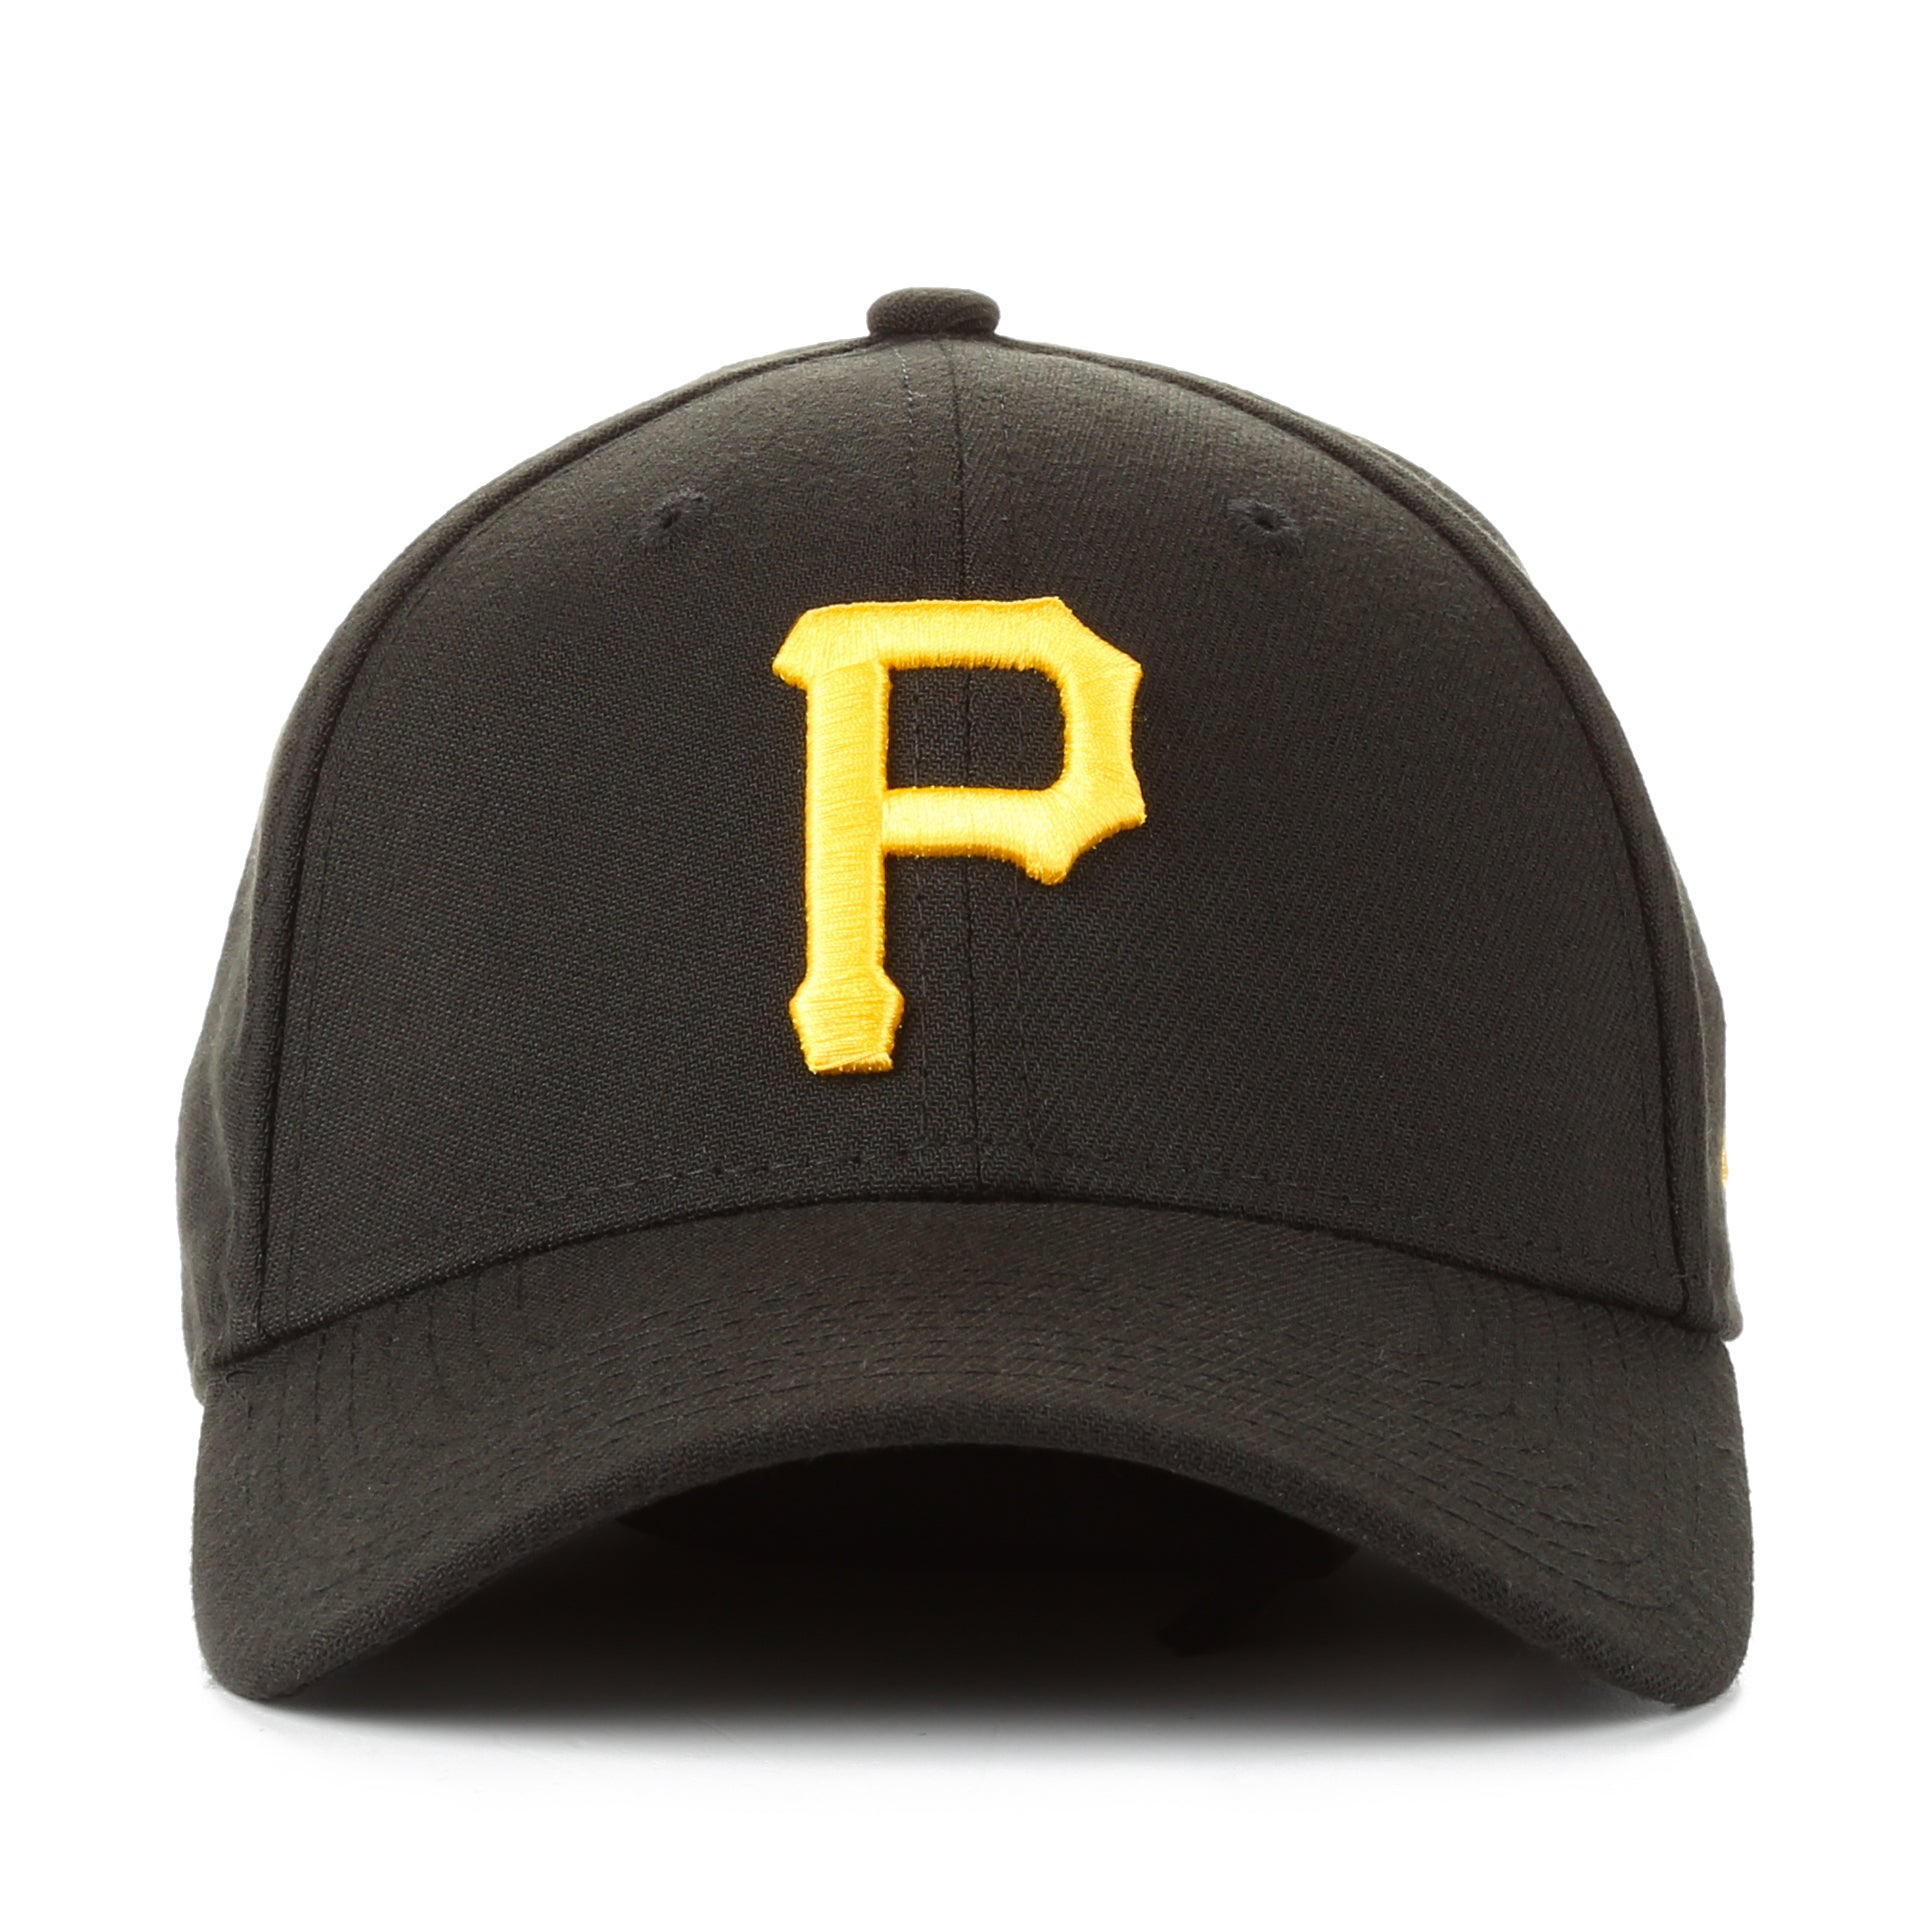 New Era 39Thirty Team Classic Stretch Fit Cap - Pittsburgh Pirates Black 28e768bfc39e